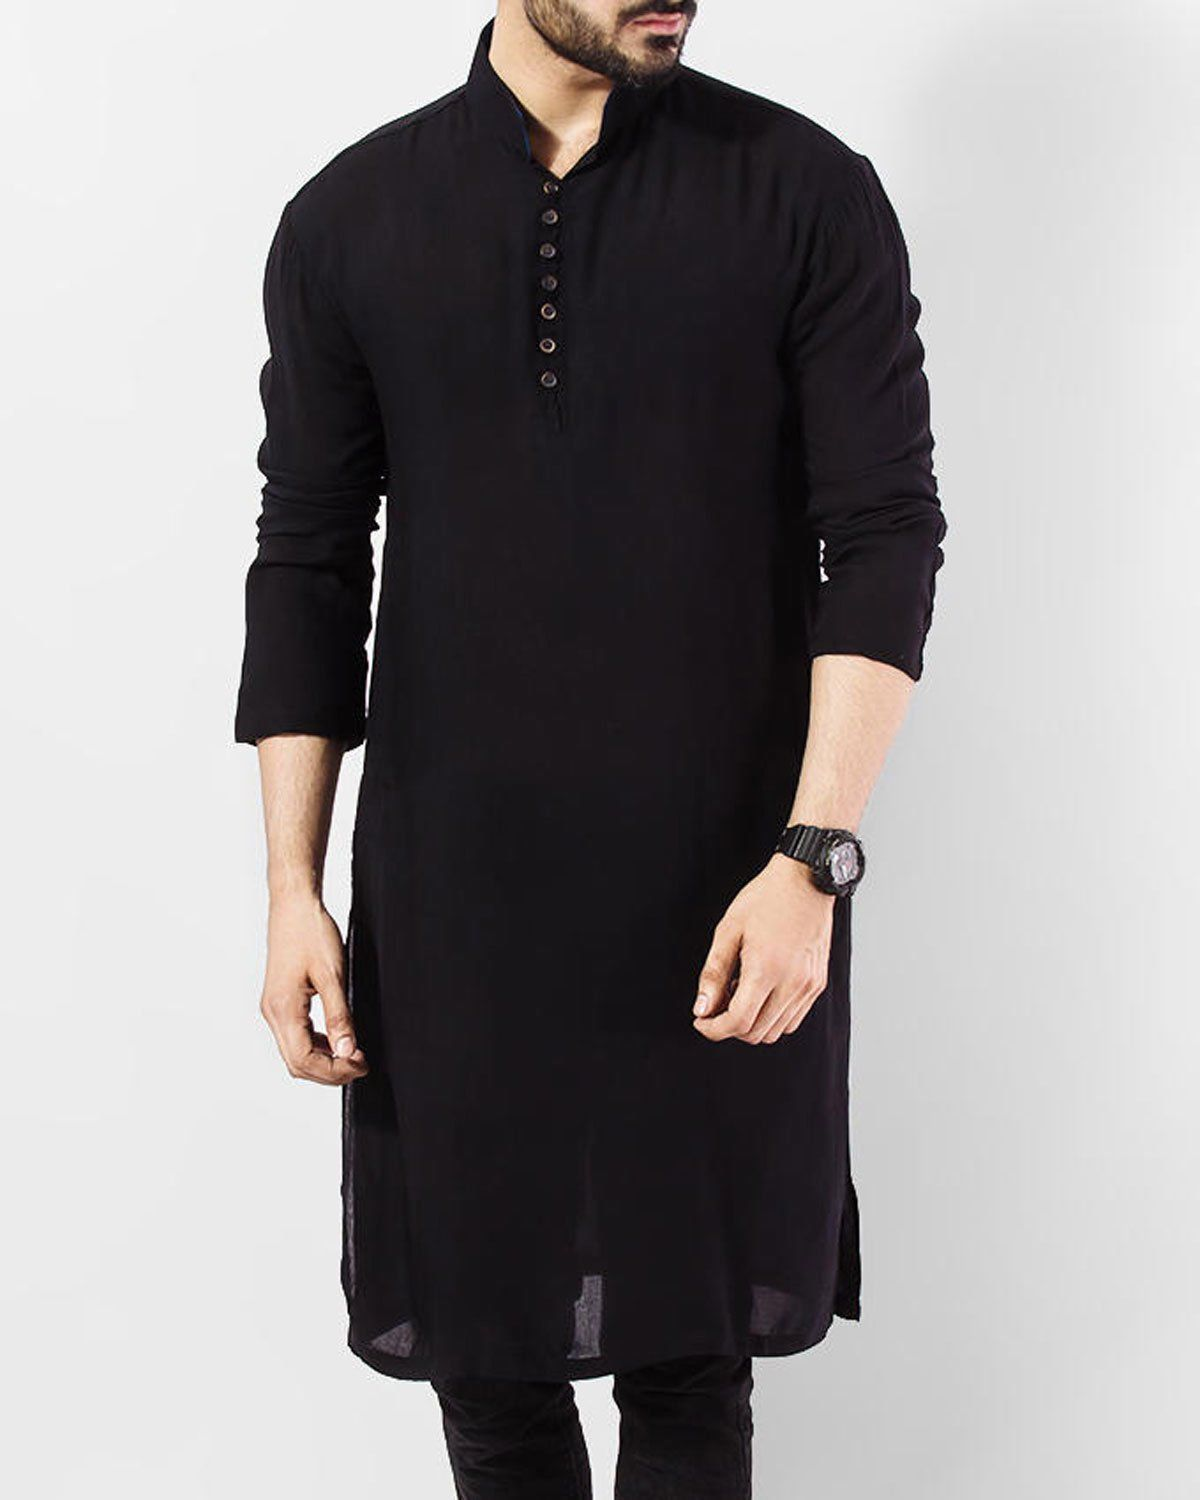 Indian Men/'s Short Kurta Shirt 100/% Cotton Plus Size Loose fit Solid Black Color Floral